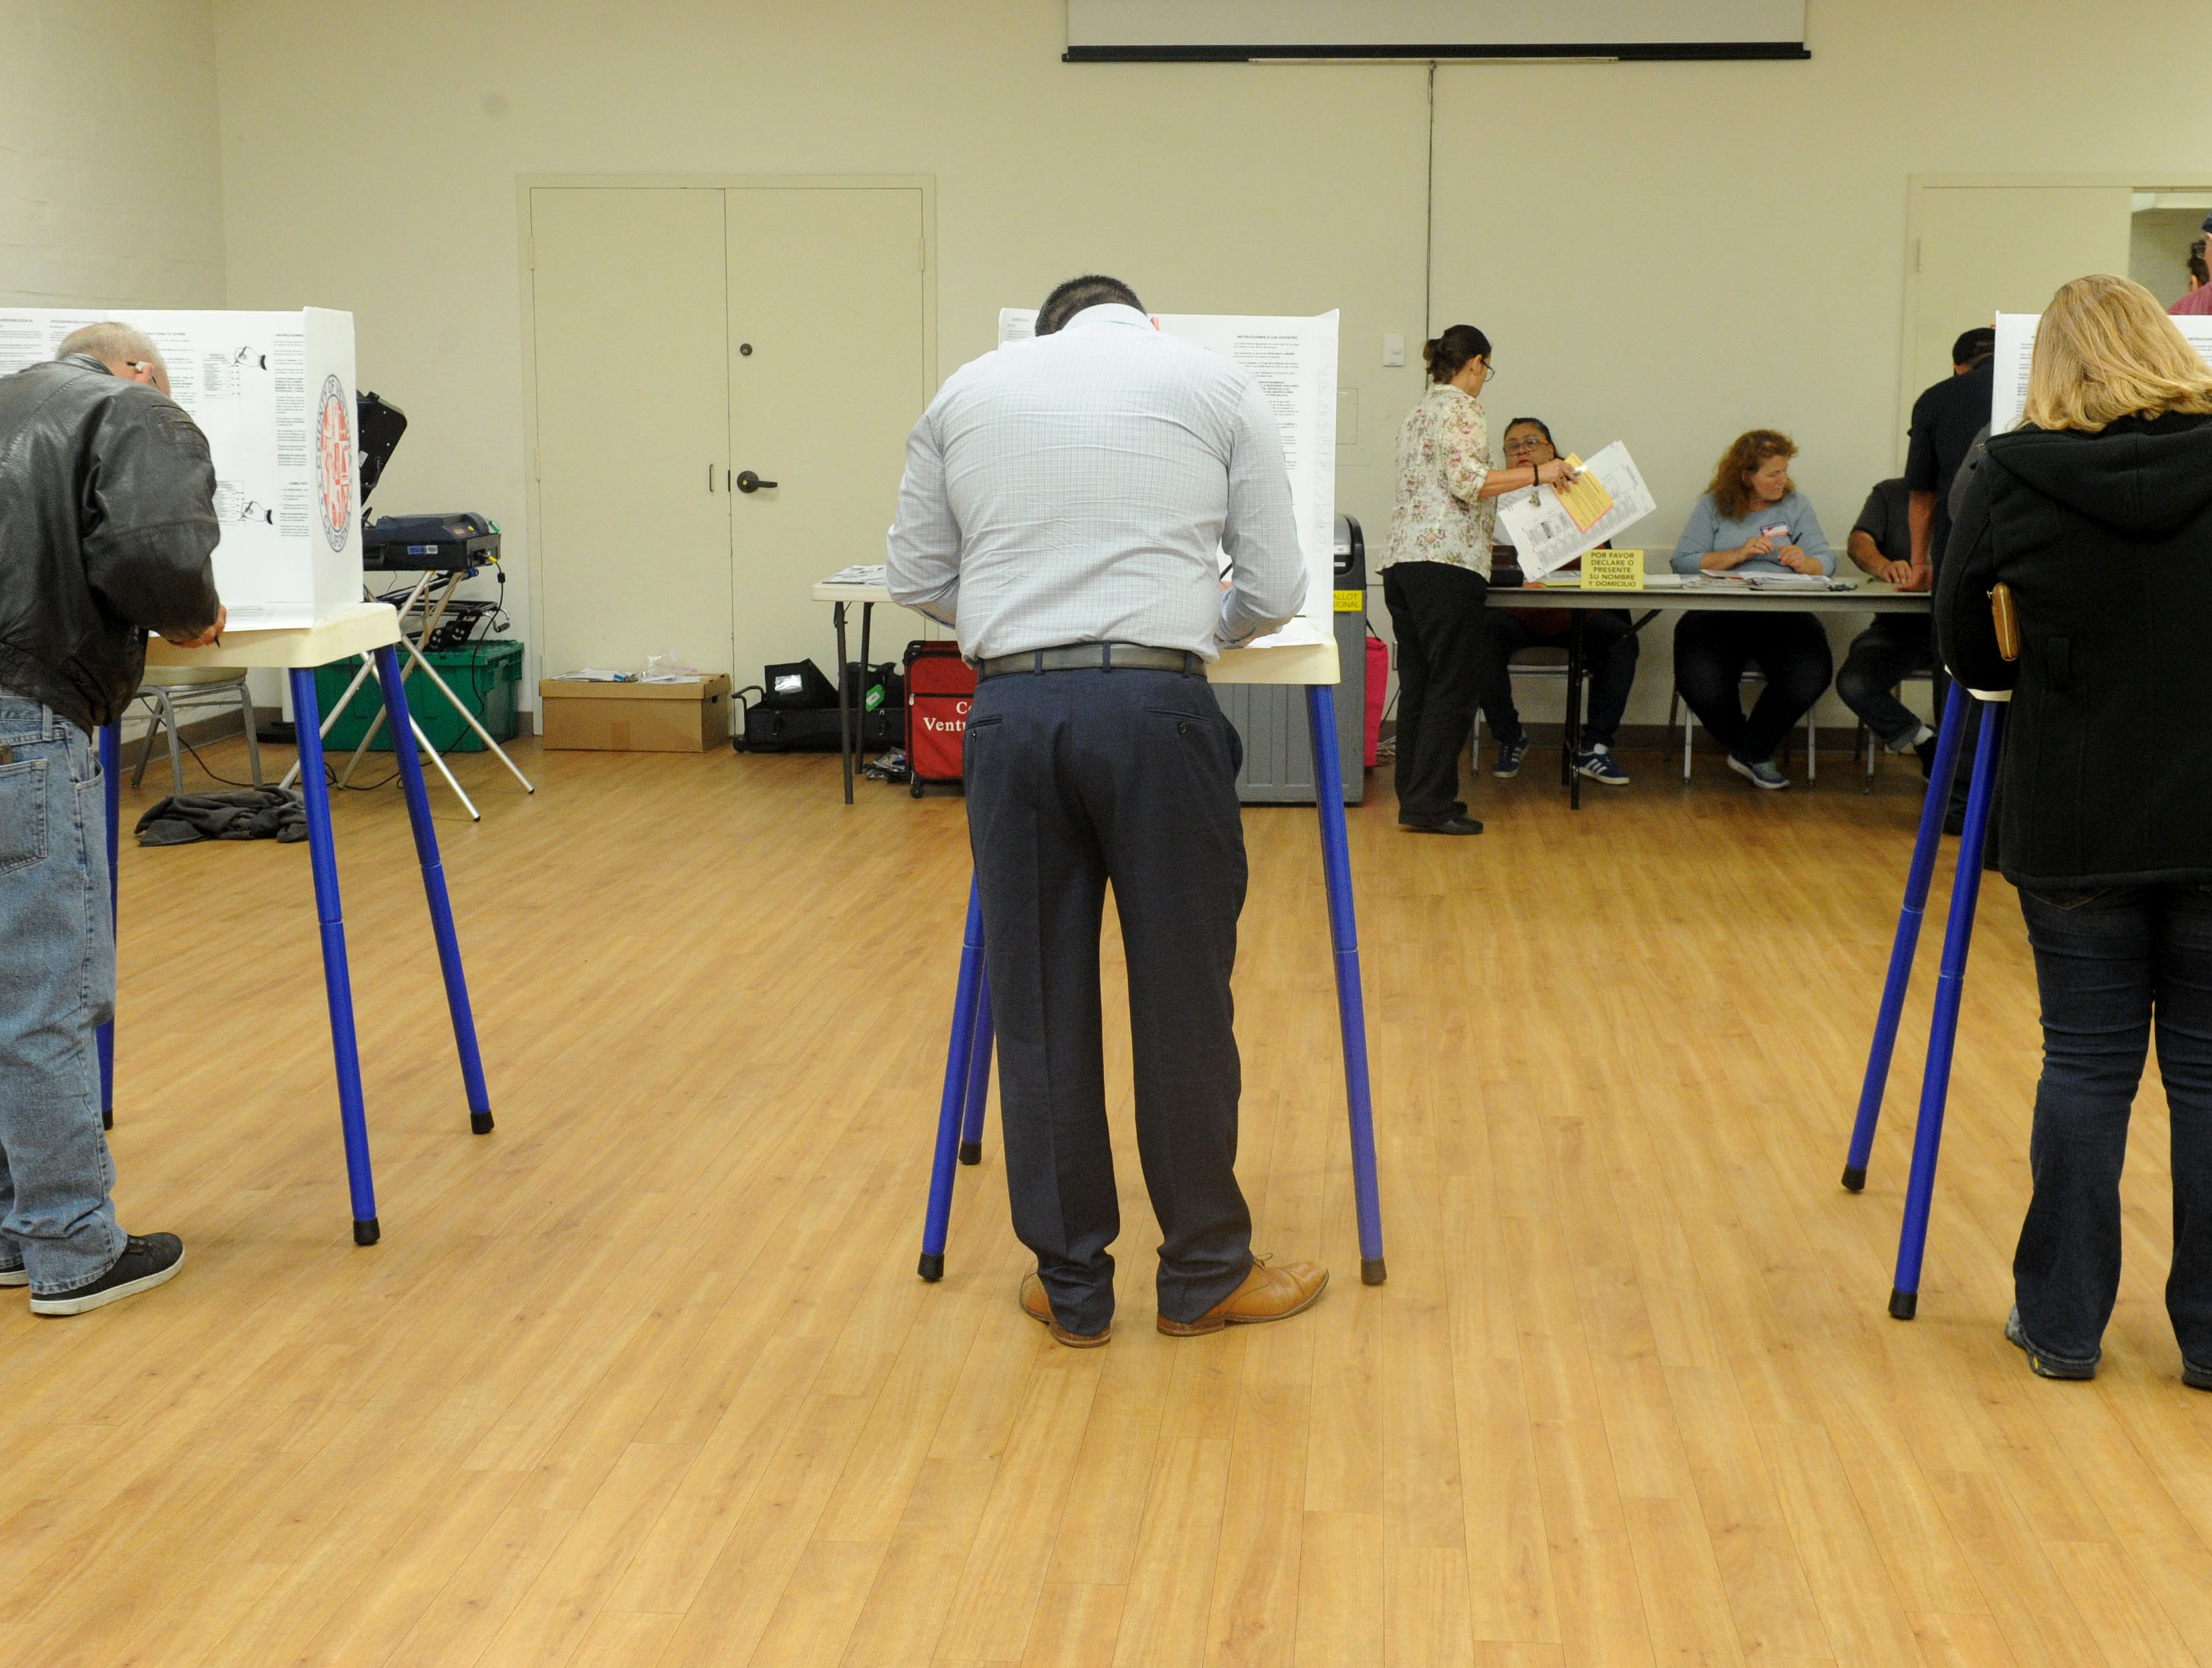 Voters fill out their ballots Tuesday at the Ventura Avenue Adult Center in Ventura.